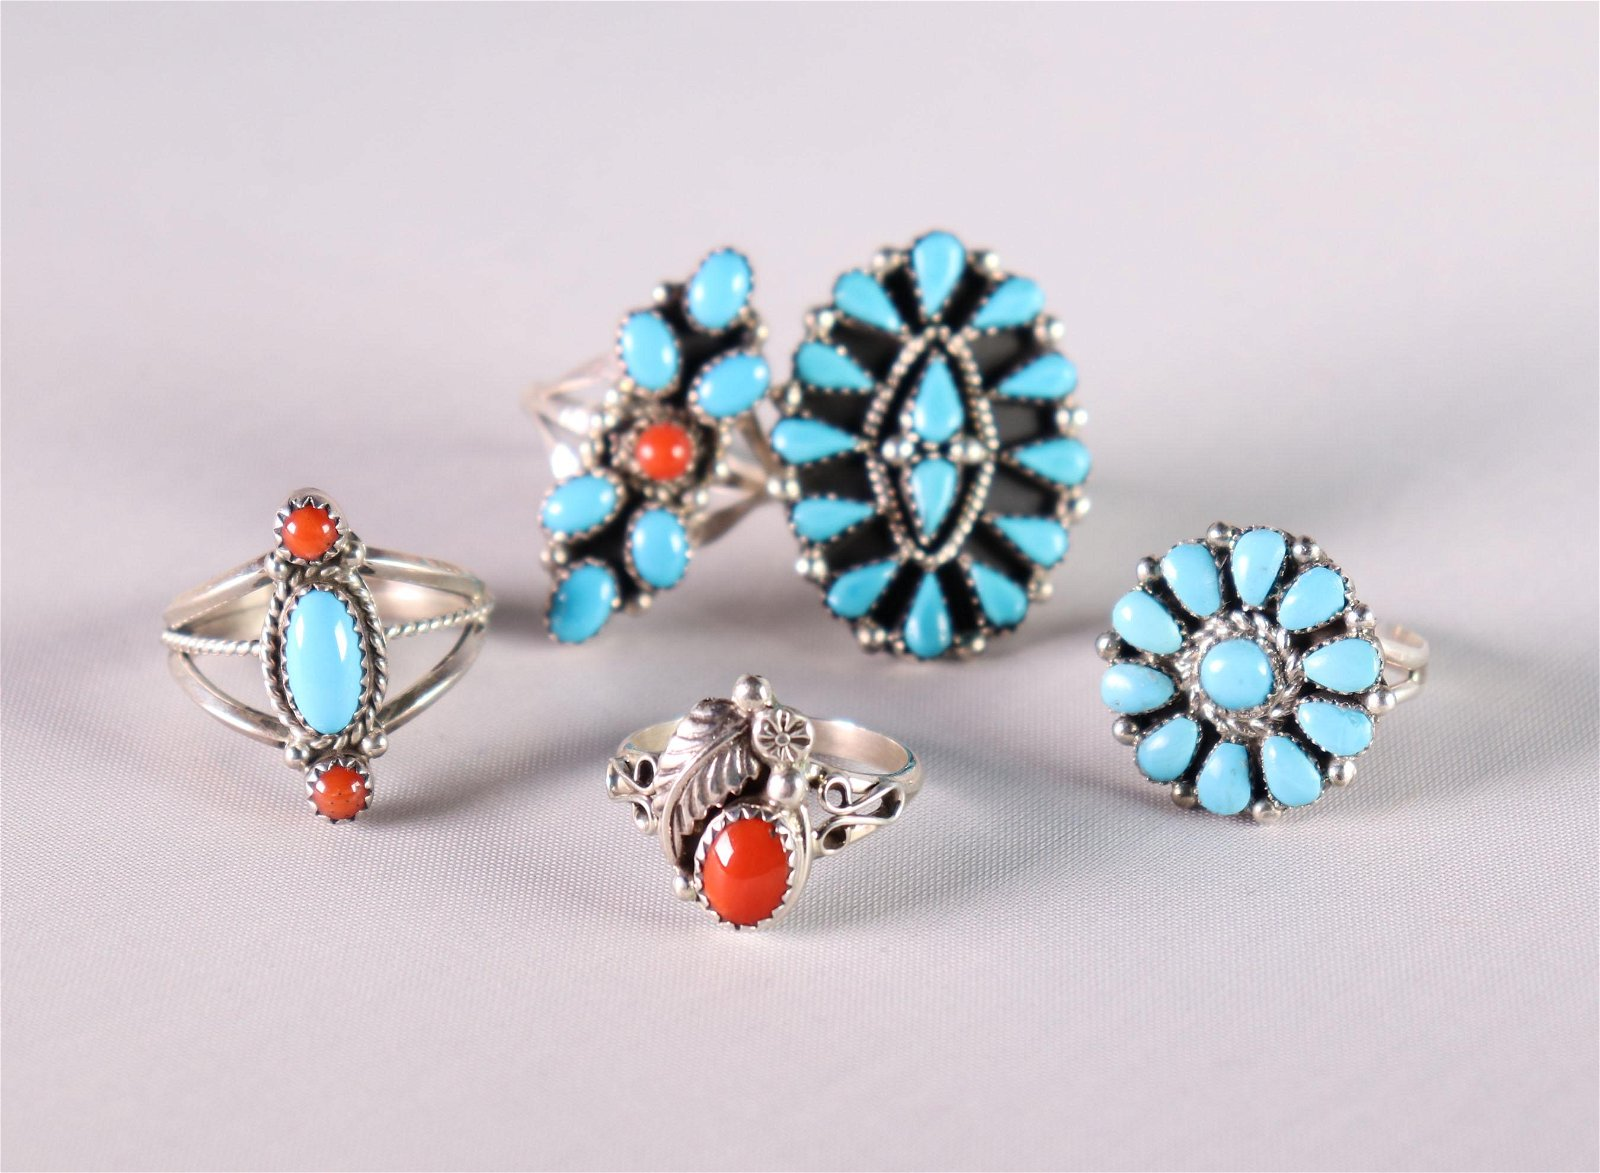 5 Native American Turquoise & Coral Silver Rings